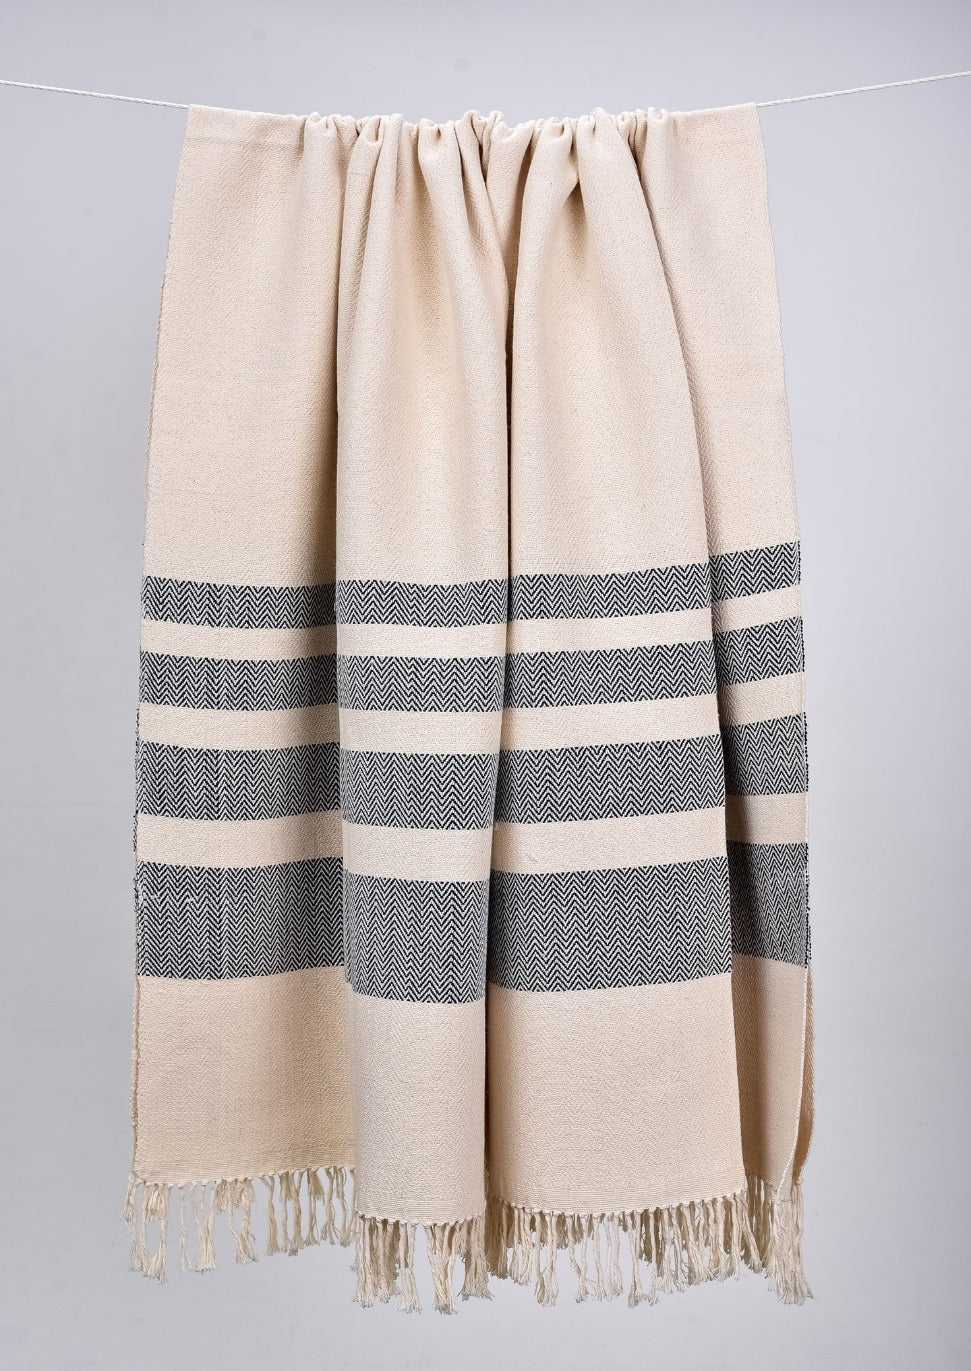 Monochromatic Cotton Throws & Blankets with Herringbone Stripes (4 sizes)